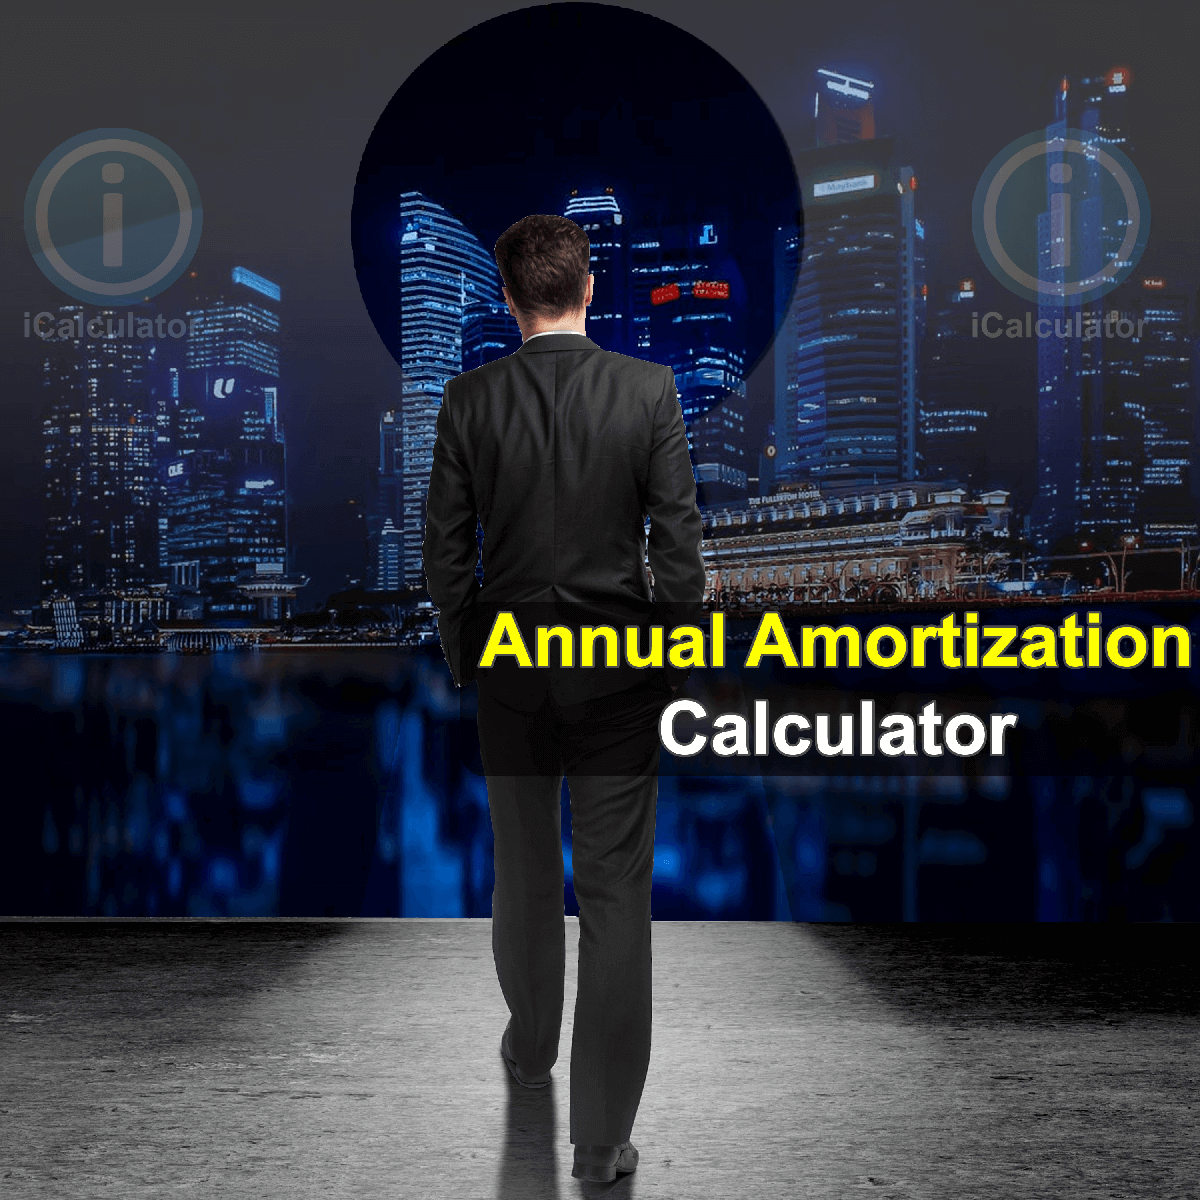 Annual Amortization Calculator. This image provides details of how to calculate annual amortization using a calculator and notepad. By using the annual amortization formula, the Annual Amortization Calculator provides a true calculation of the monthly repayments and the amount of interest from borrowing or investing using amortization formula on an annual basis